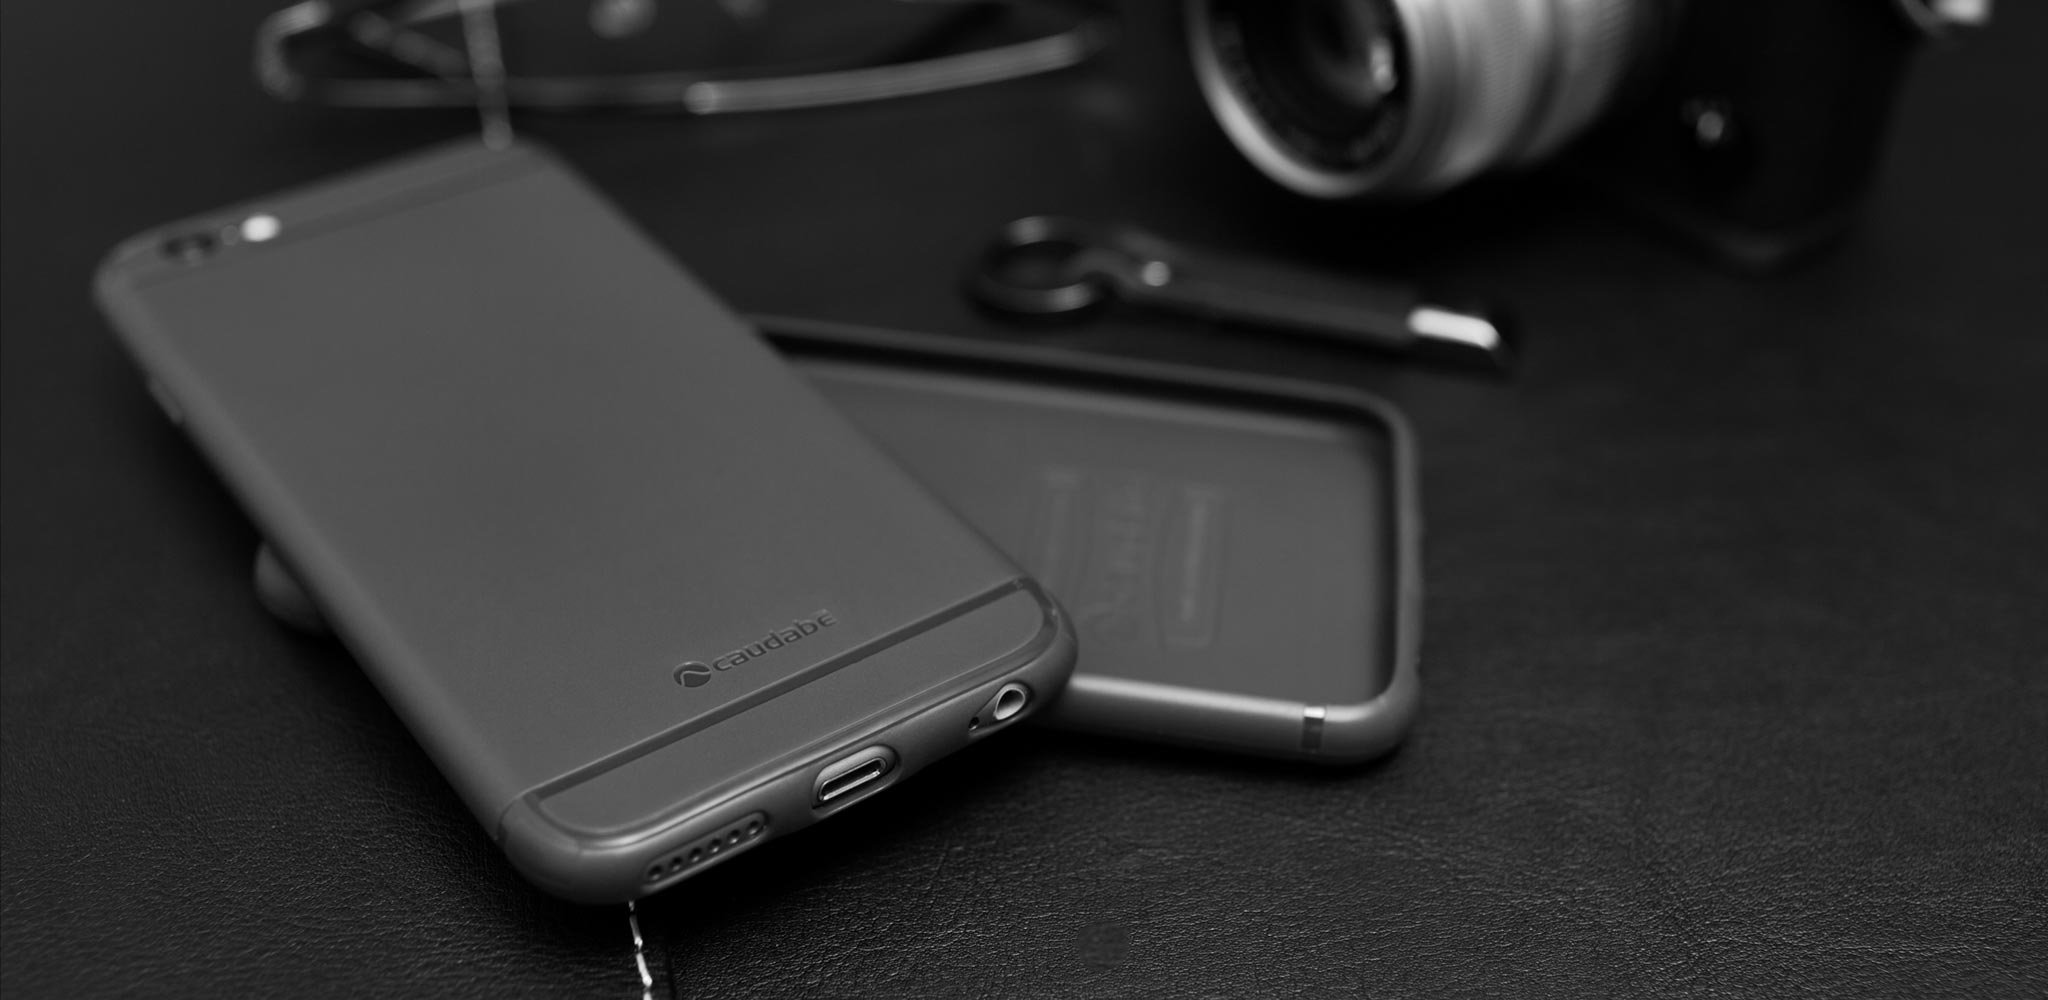 The Sheath | Super slim, shock-absorbing minimalist iPhone case | camera